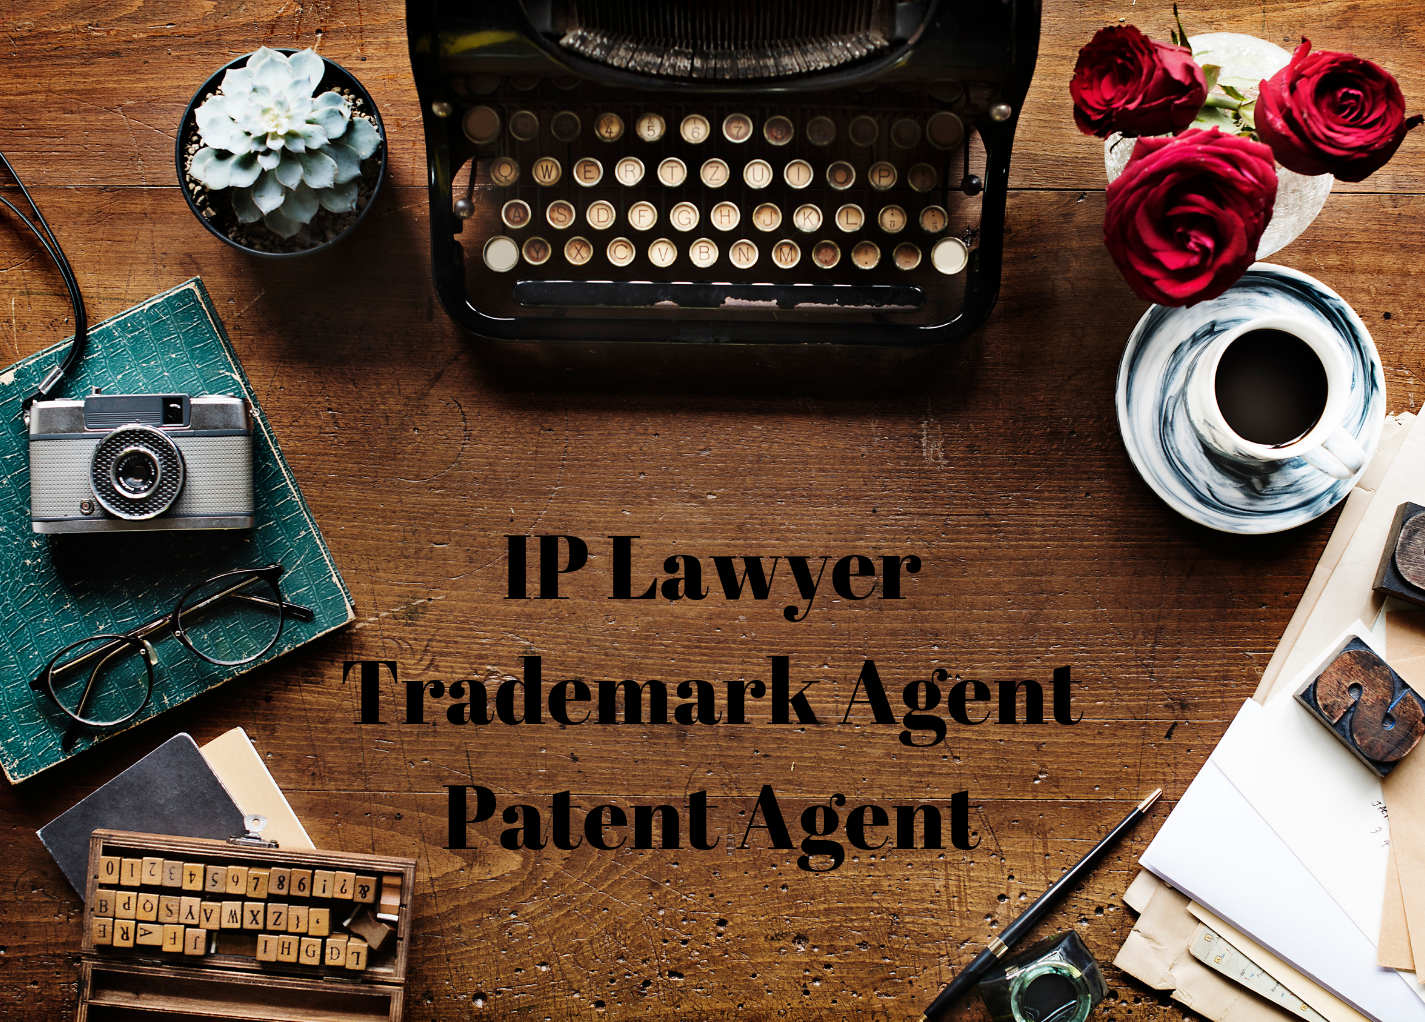 IP Services: Trademarks, Patents, Industrial Designs, Copyright. Licensed Lawyer, Trademark Agent, Patent Agent